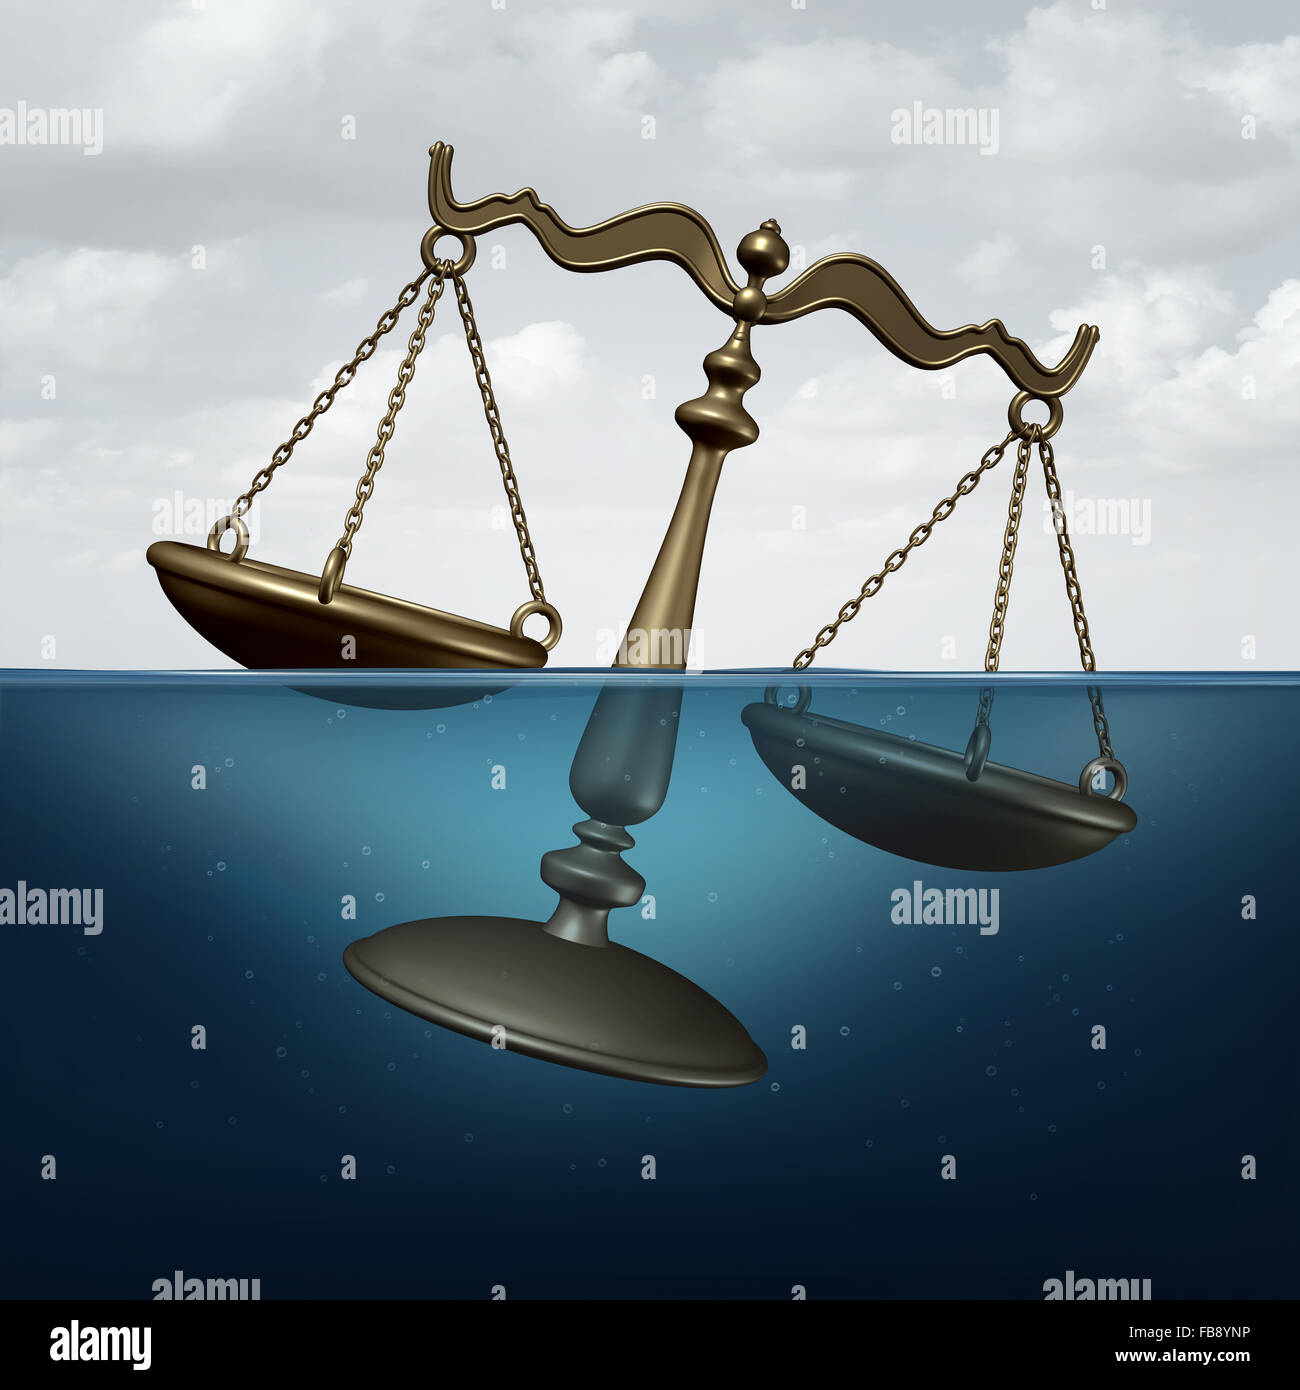 Legal trouble concept or justice problems symbol as a scale of justice drowning in water as a metaphor for law or - Stock Image